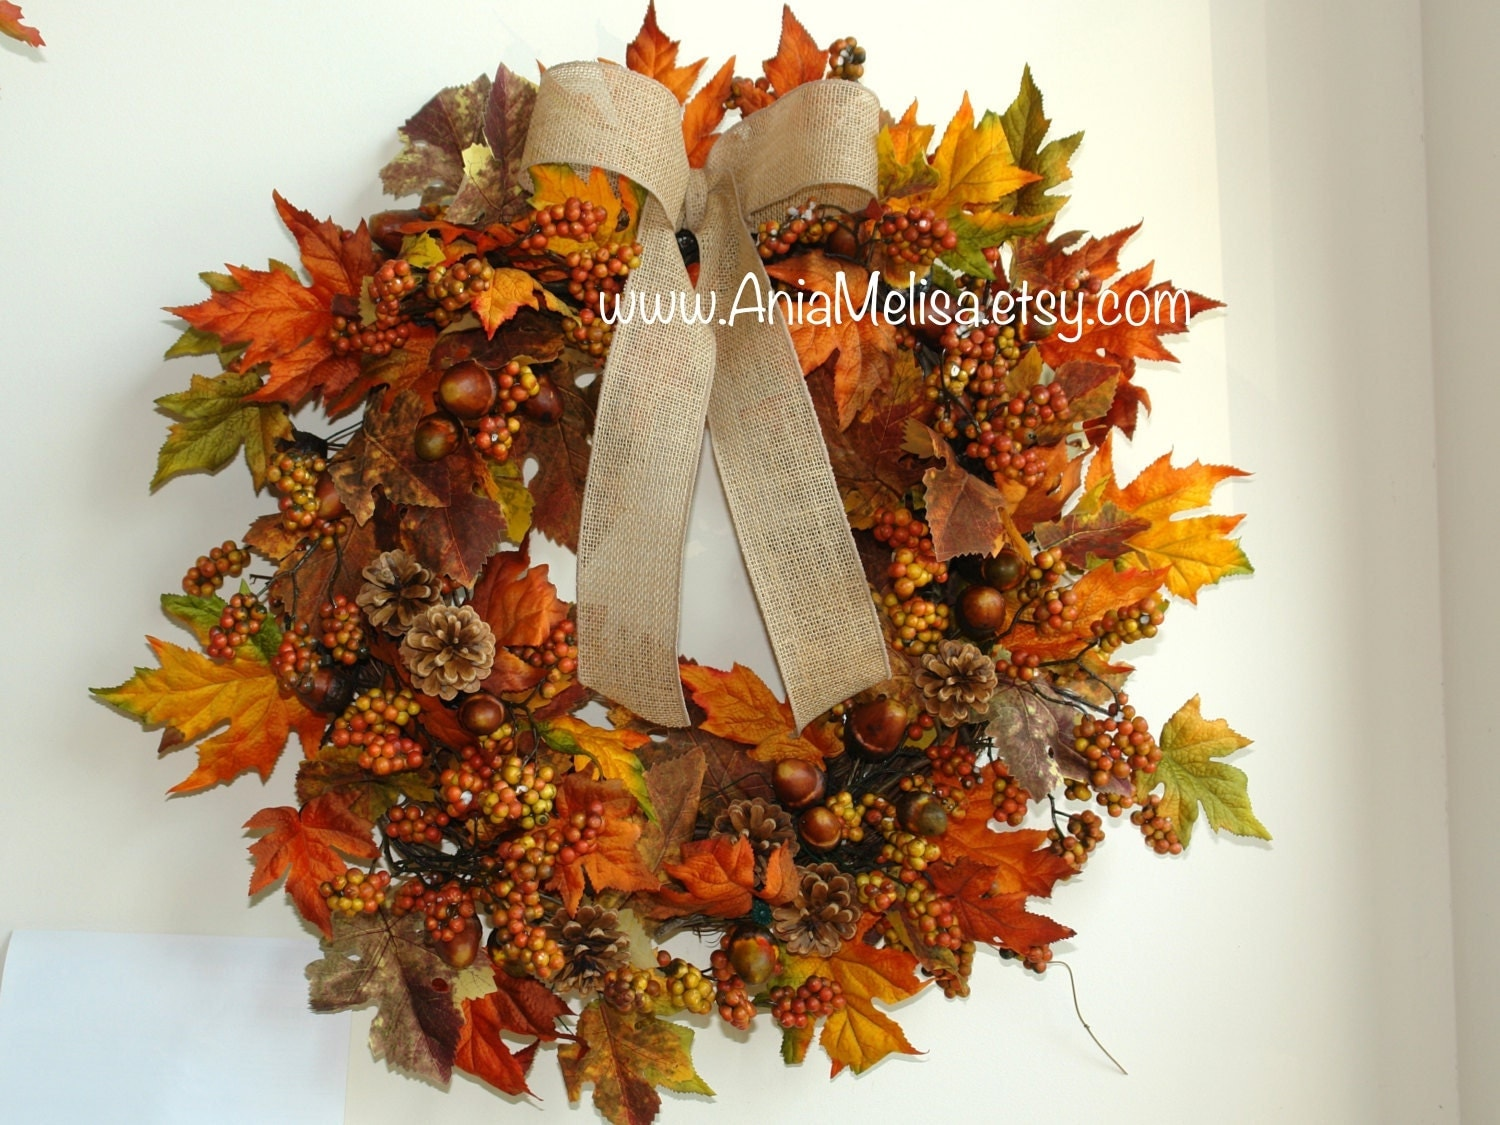 Fall Wreath Fall Wreaths Autumn Wreaths Front Door Wreaths